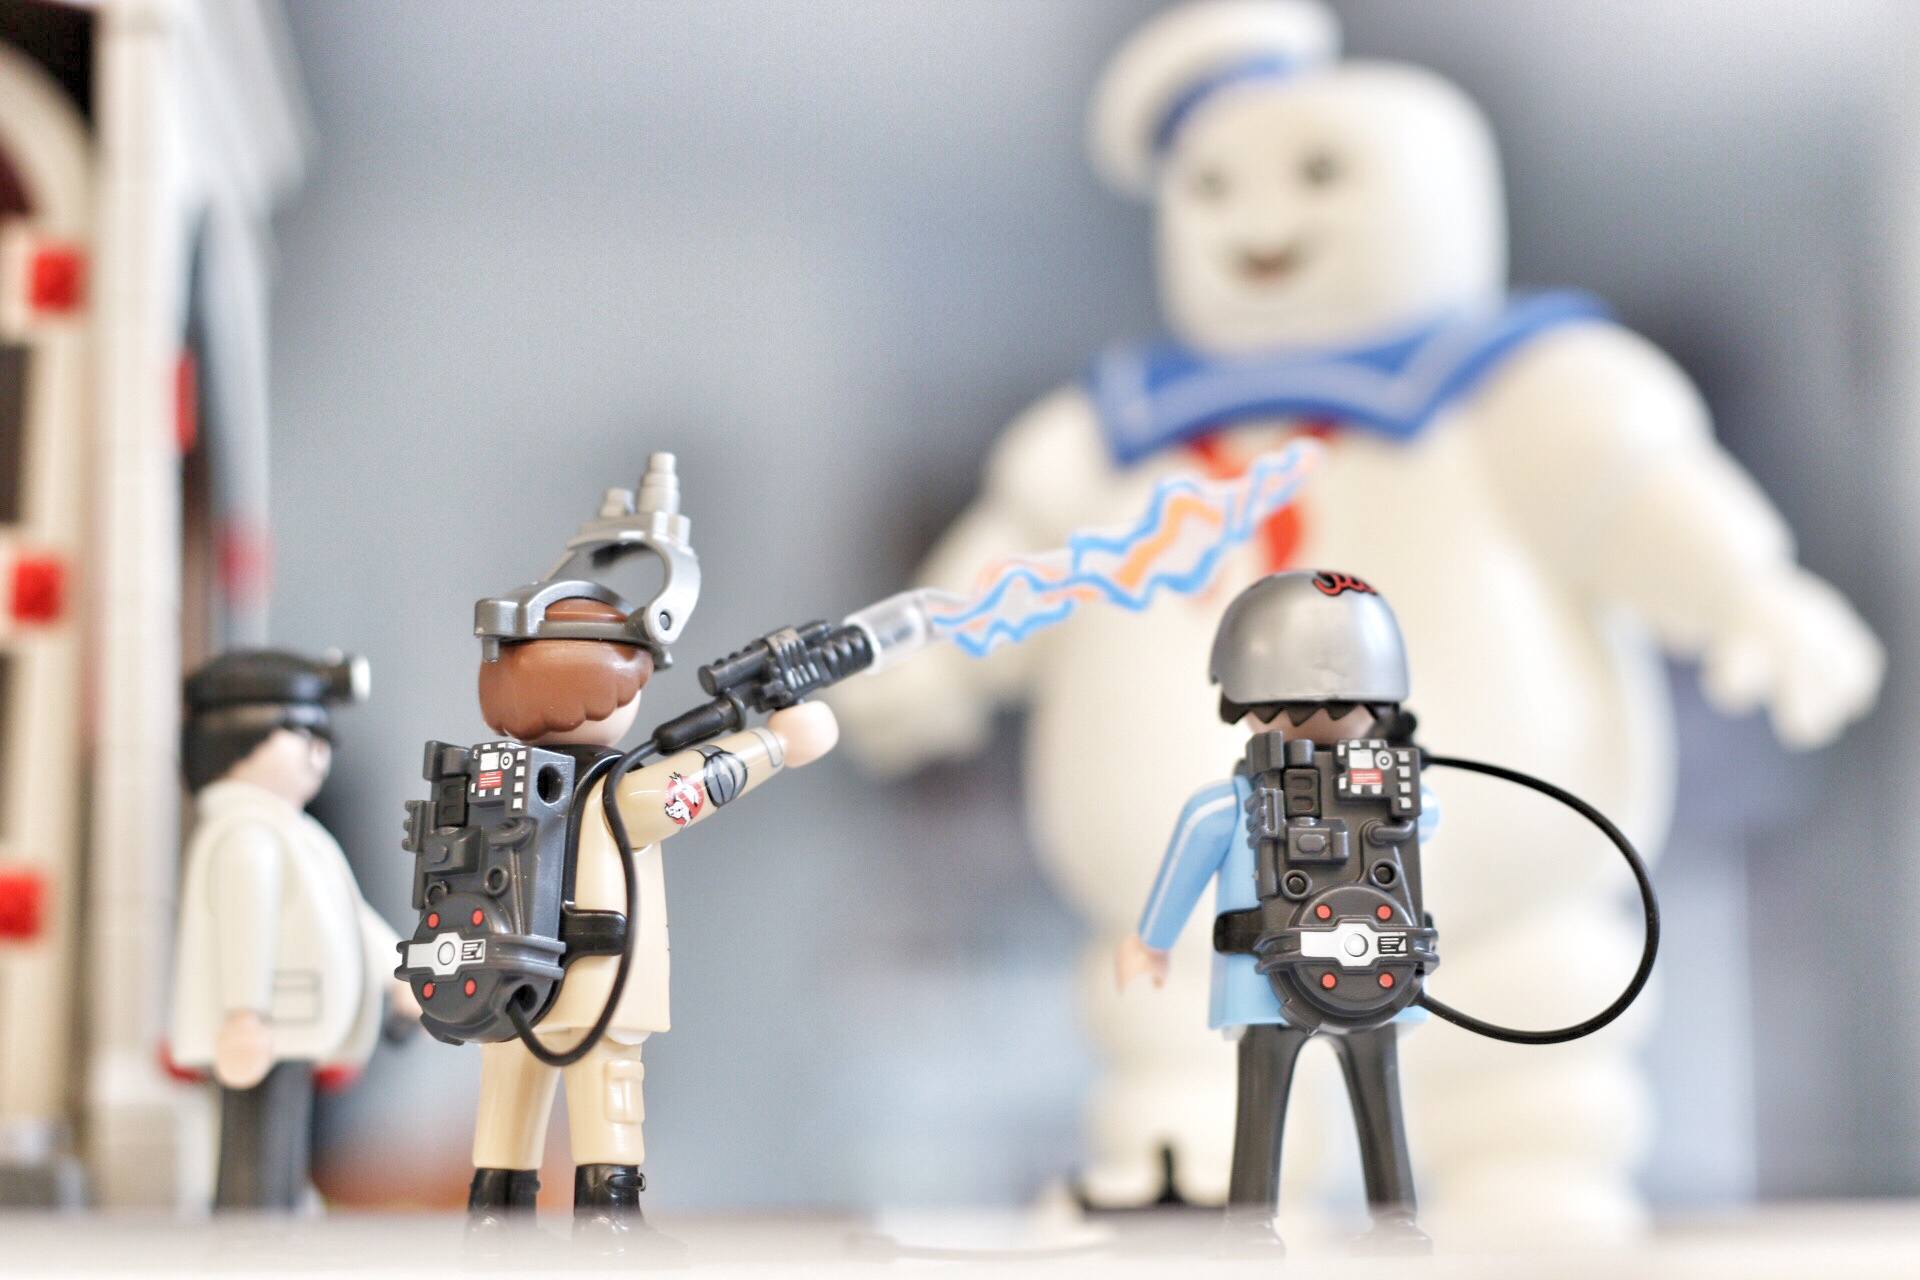 Playmobil_Ghostbusters1.jpg